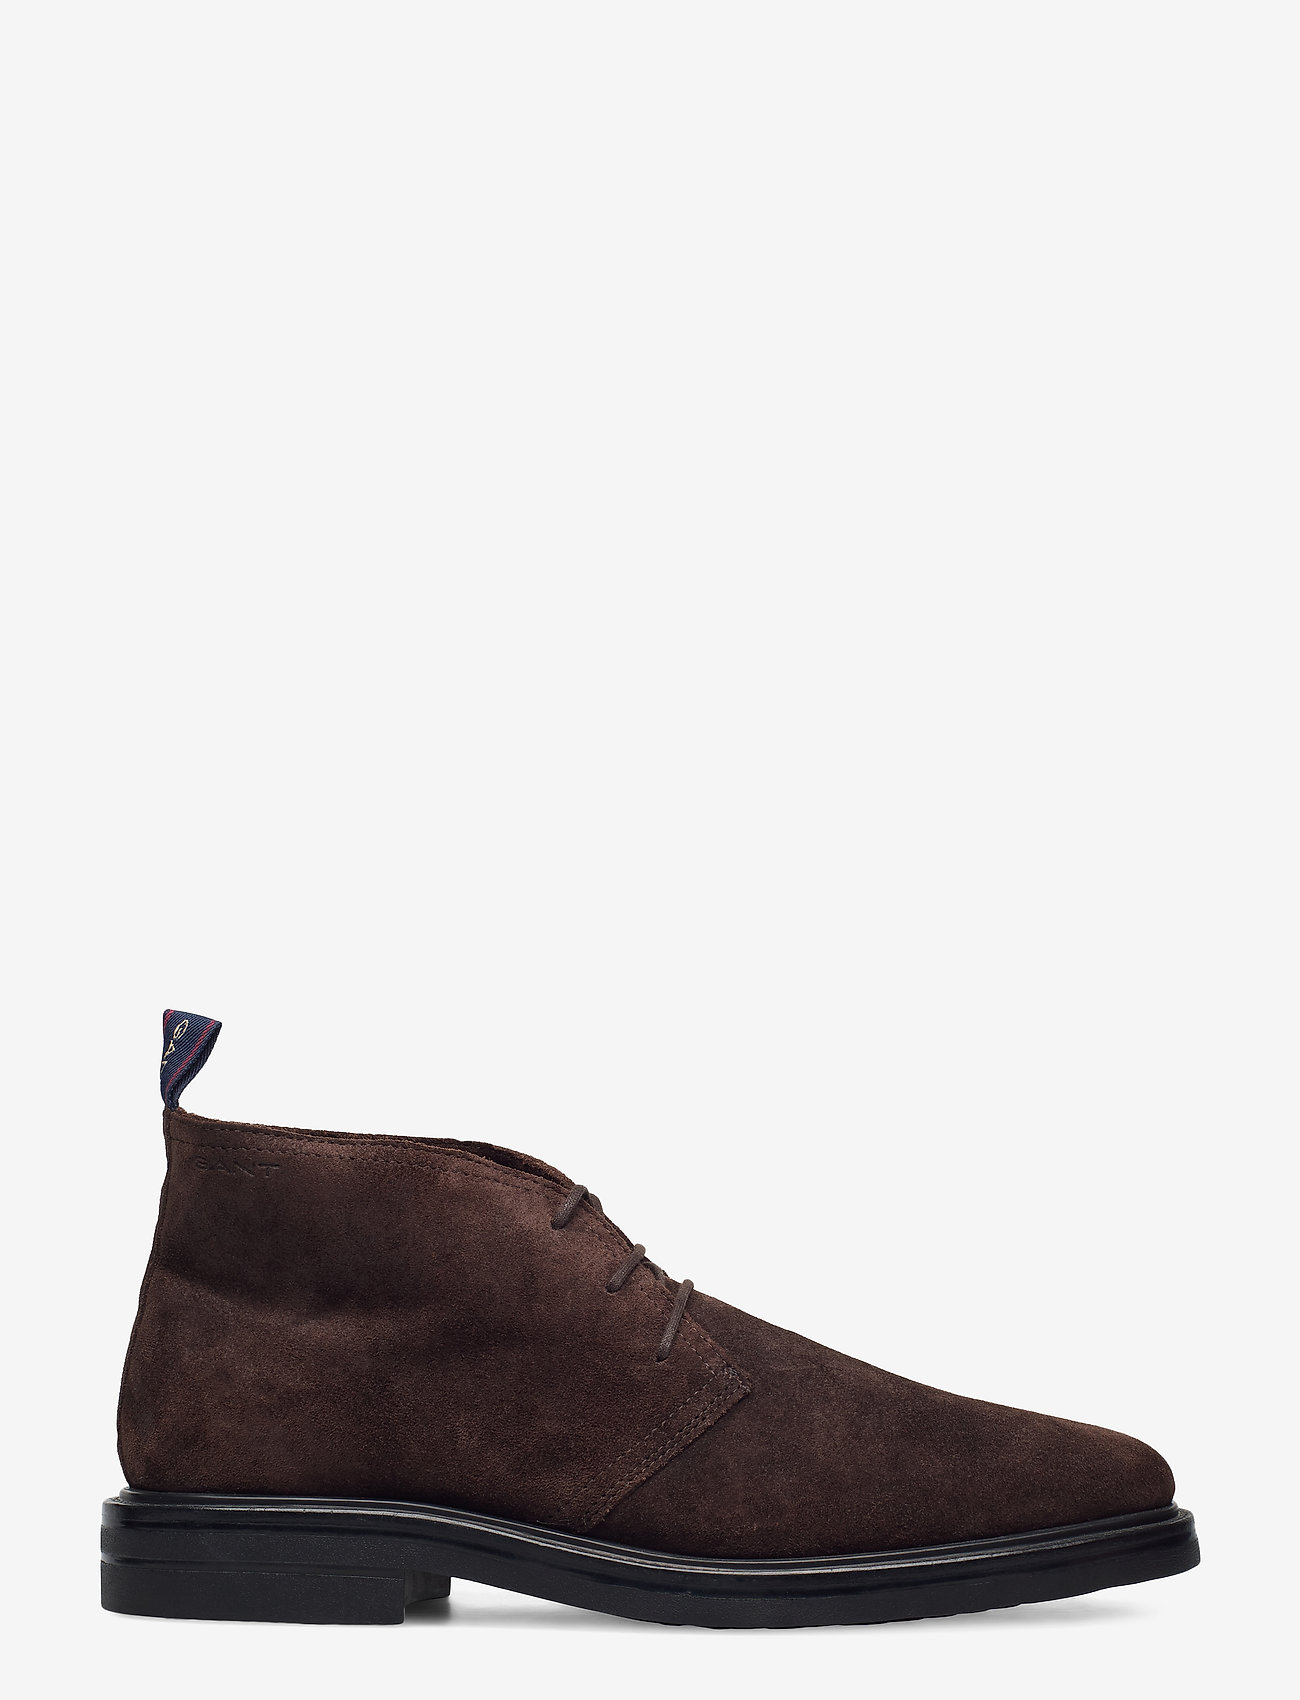 GANT - Kyree Mid lace boot - desert boots - dark brown - 1